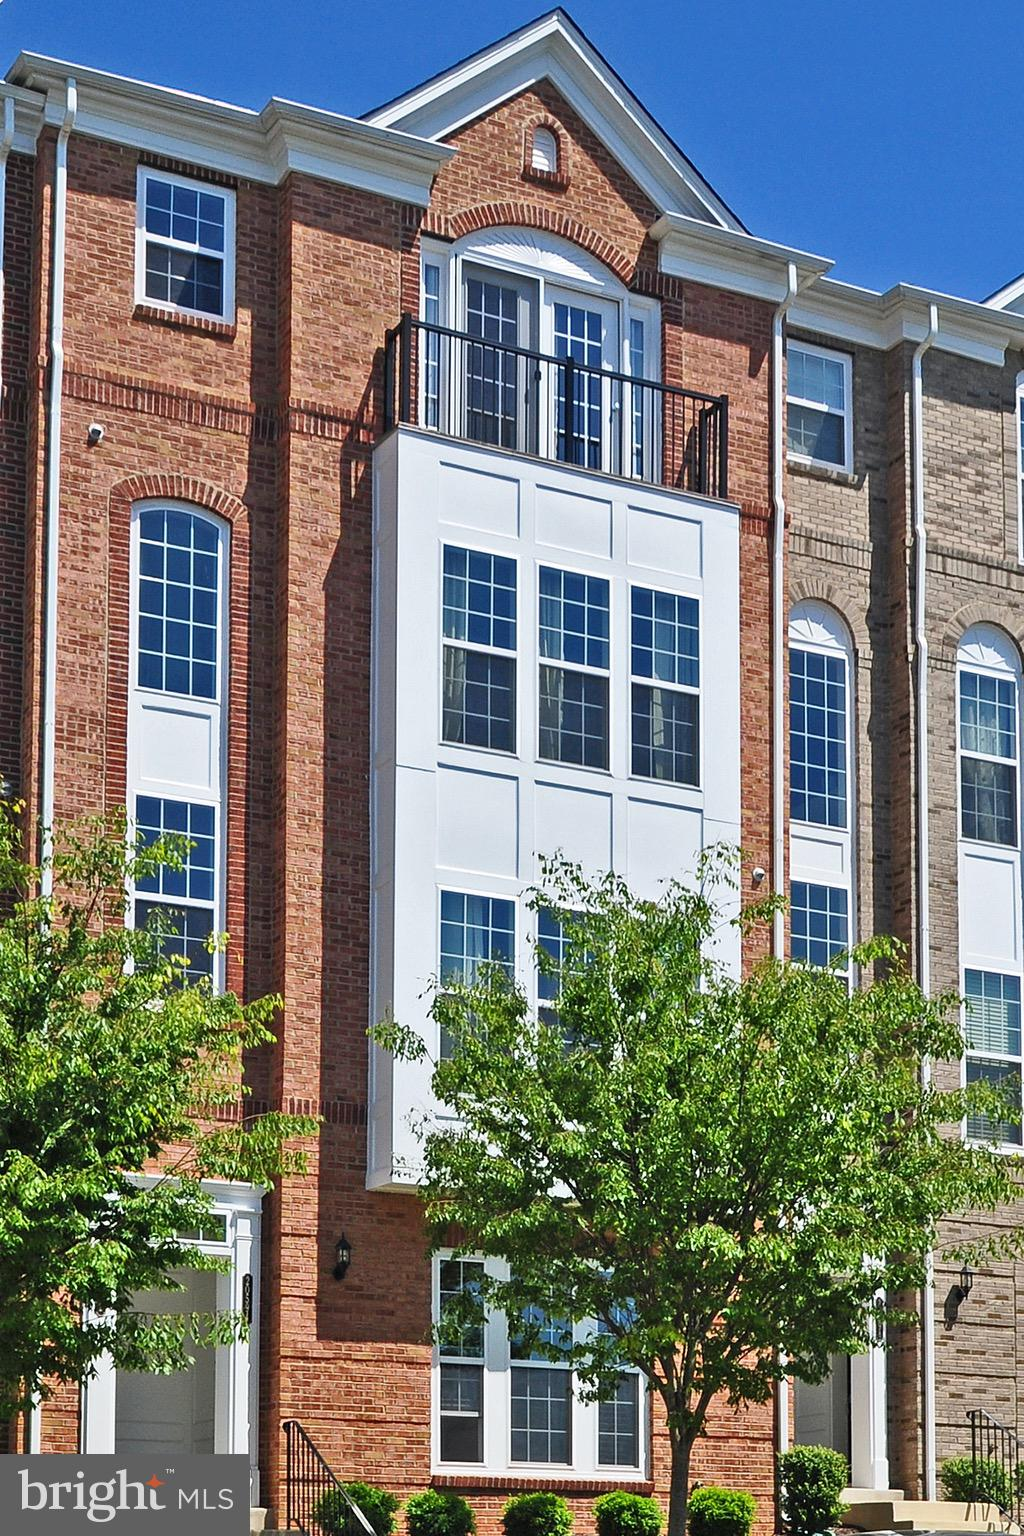 Stunning 3 Bedroom, 2.5 Bath Townhome Style Condo in Sought after Goose Creek! Bright Open Floorplan